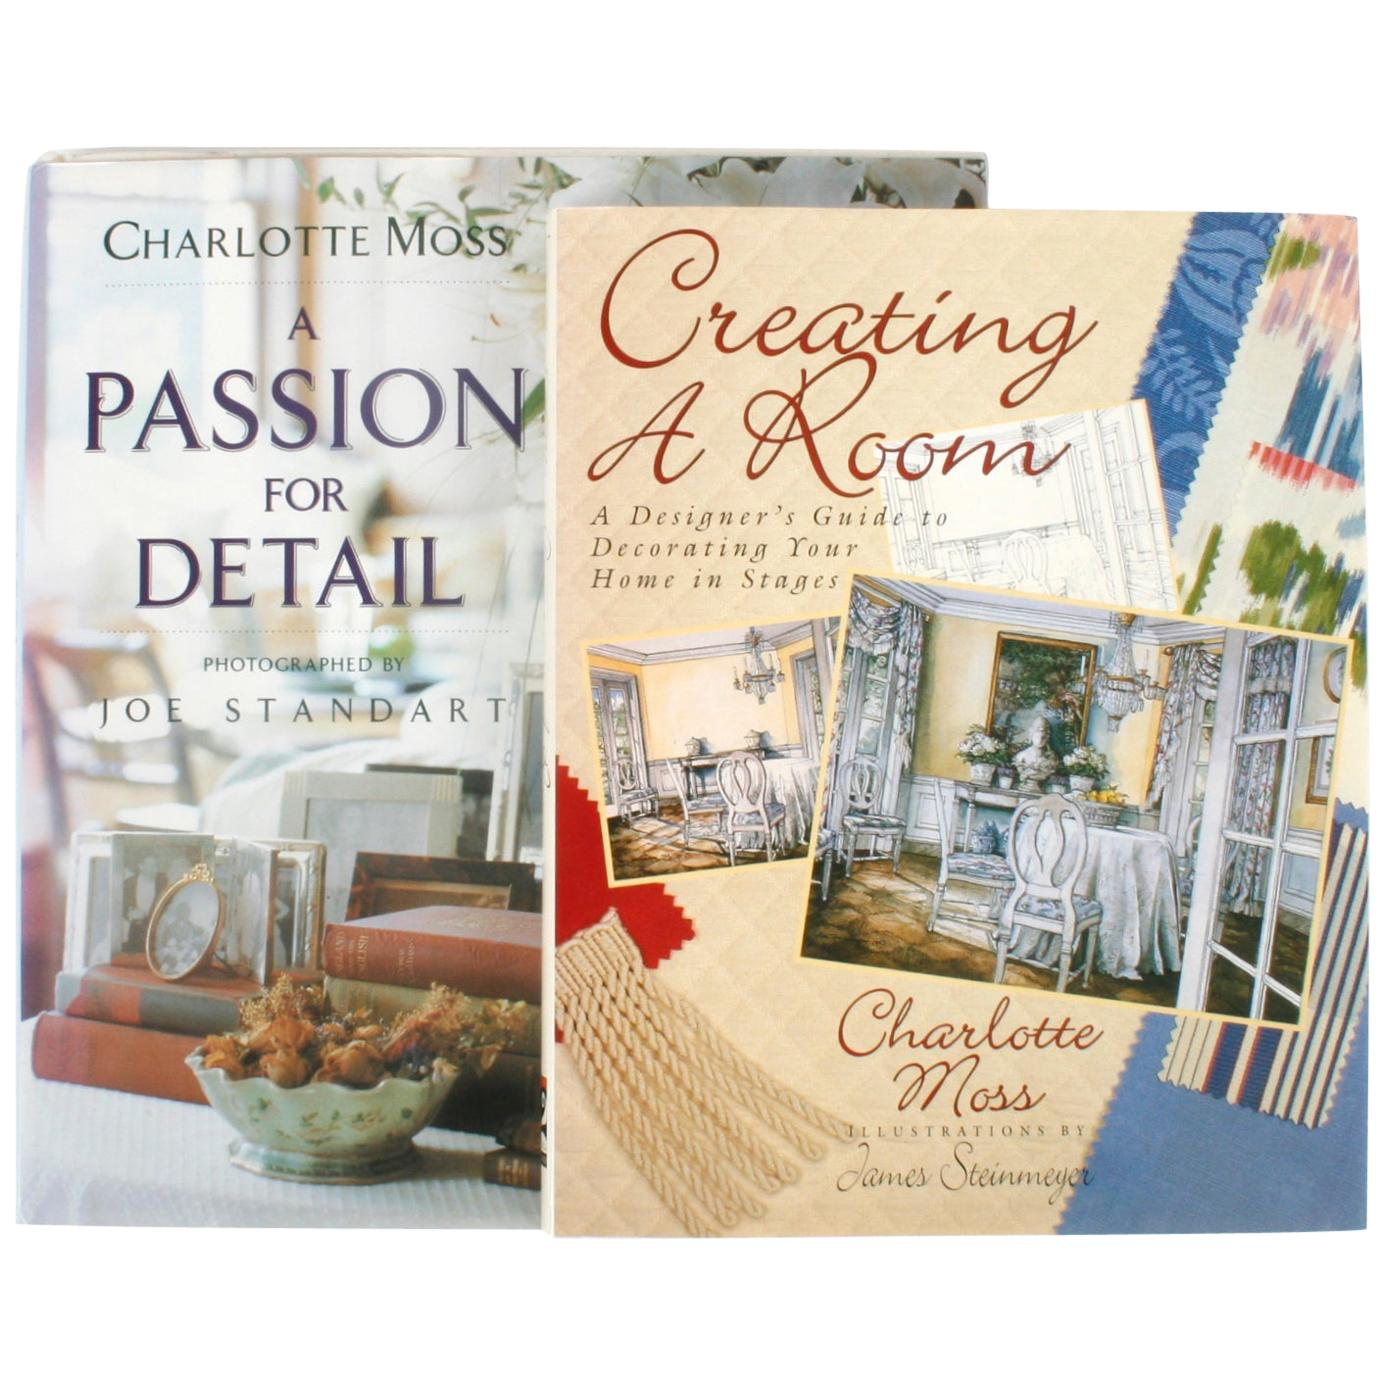 Two Charlotte Moss Books, a Passion for Detail and Creating a Room